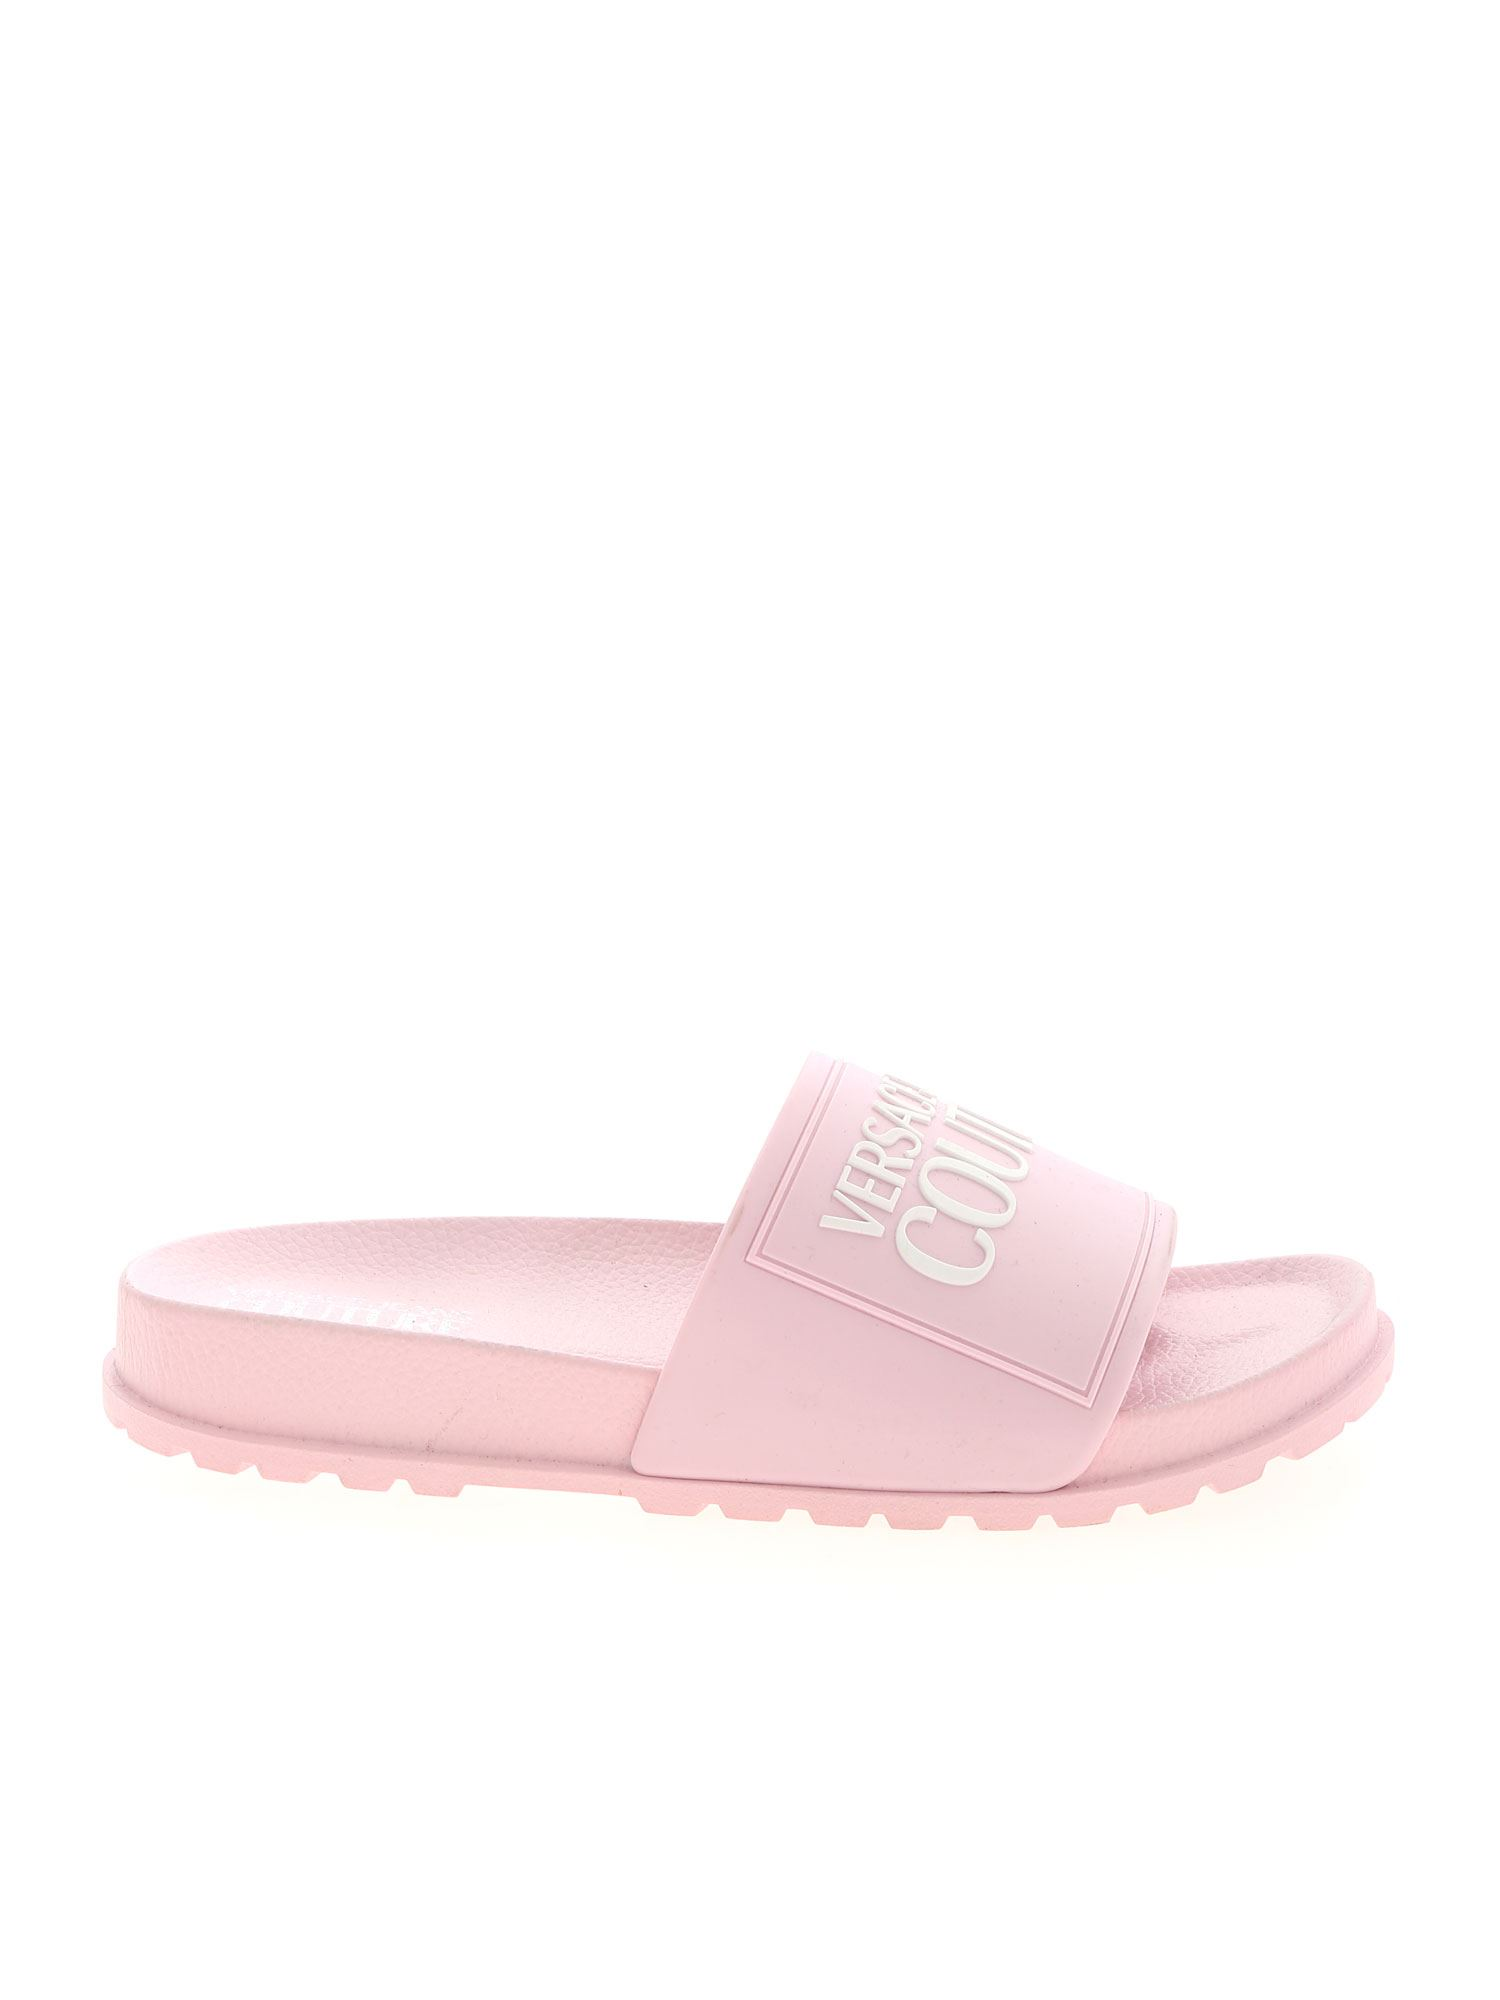 Versace Jeans Couture LOGO SLIPPERS IN PINK